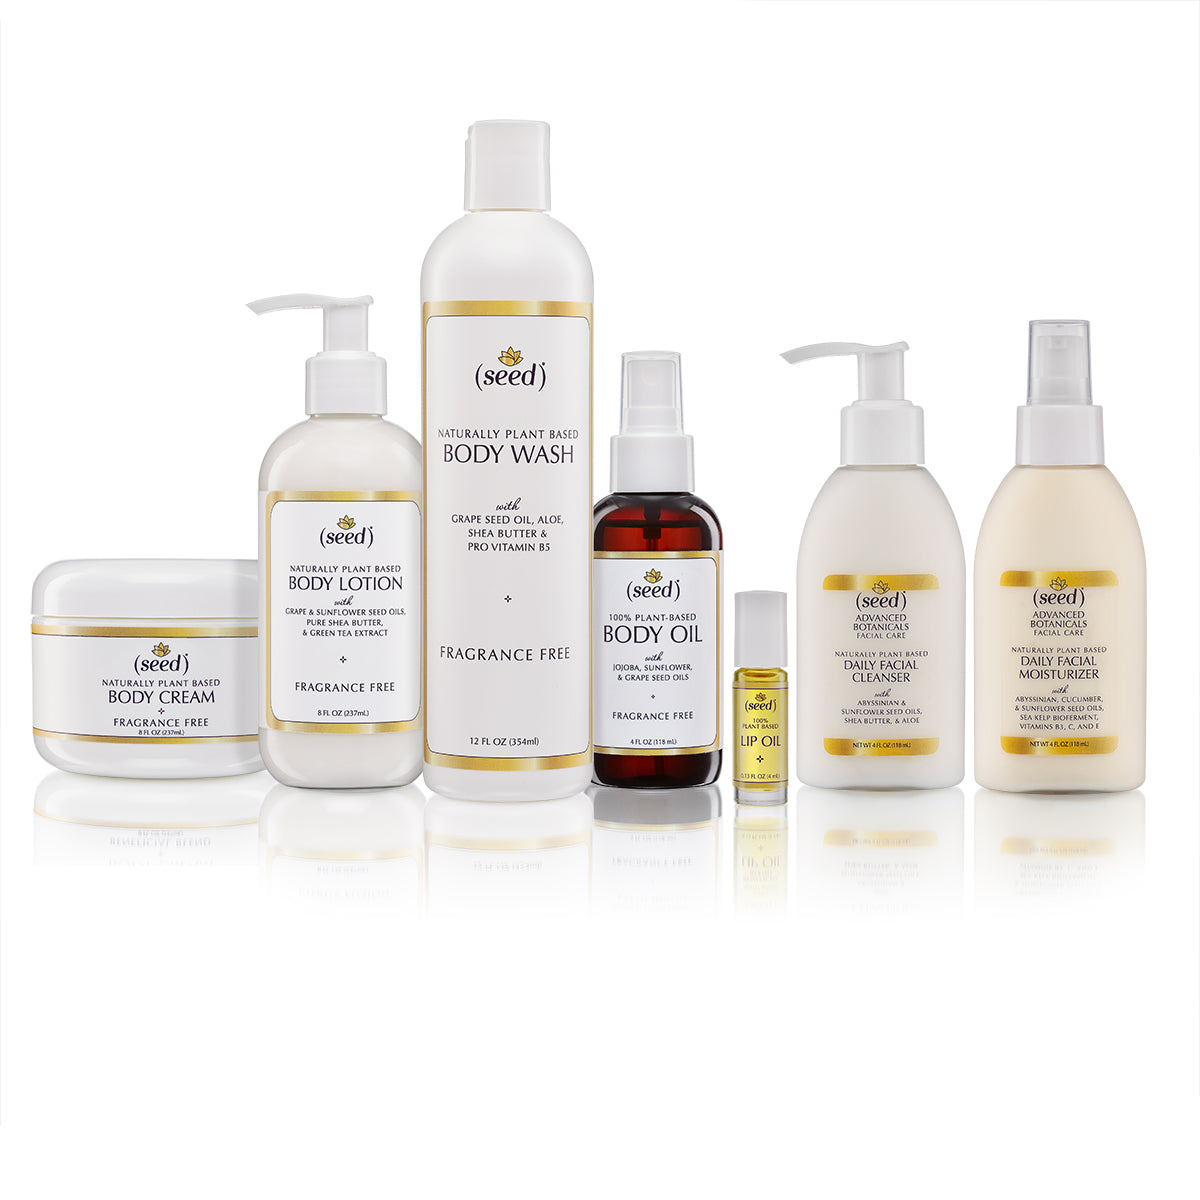 Seed Fragrance Free Face and Body Care skin care collection